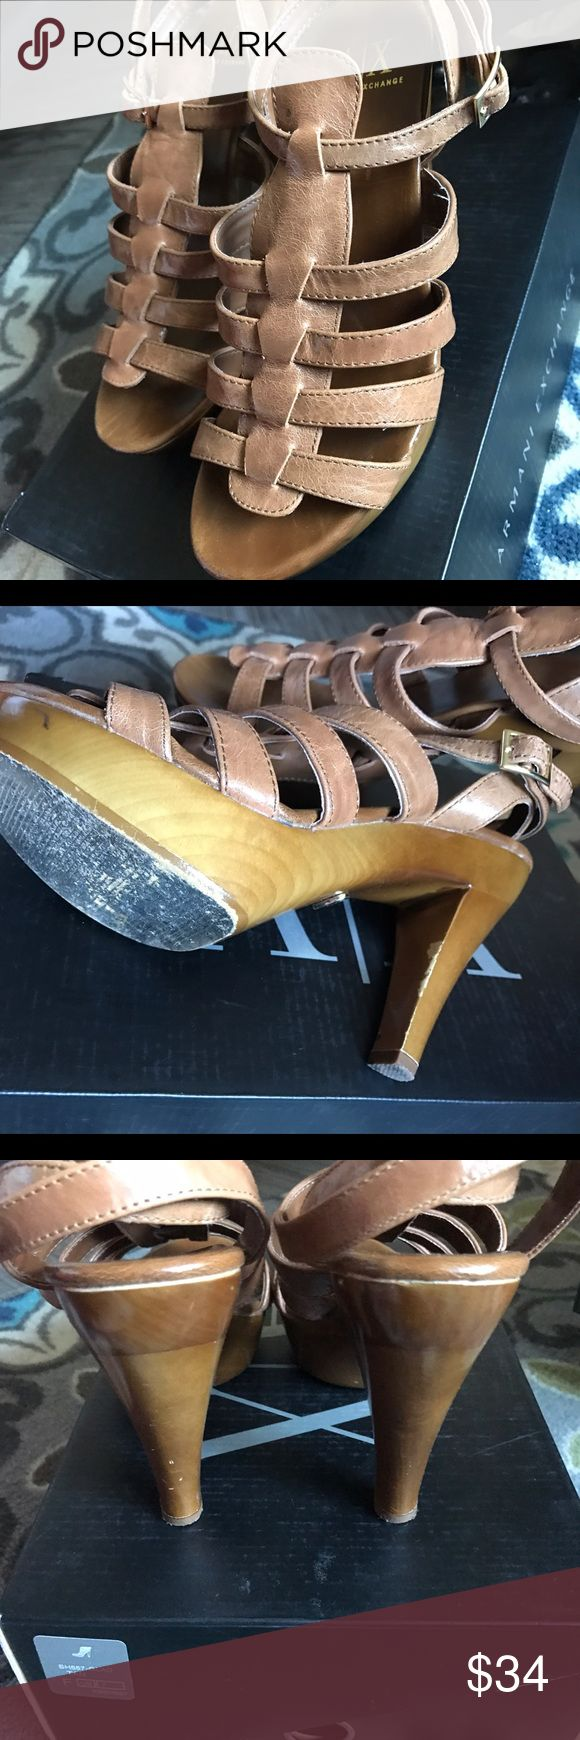 Armani Exchange Gladiator Sandals A/X platform Gladiator Sandals. You won't even feel like you're wearing heels because of its platform. It runs TTS. Still in good condition. Has box. A/X Armani Exchange Shoes Sandals